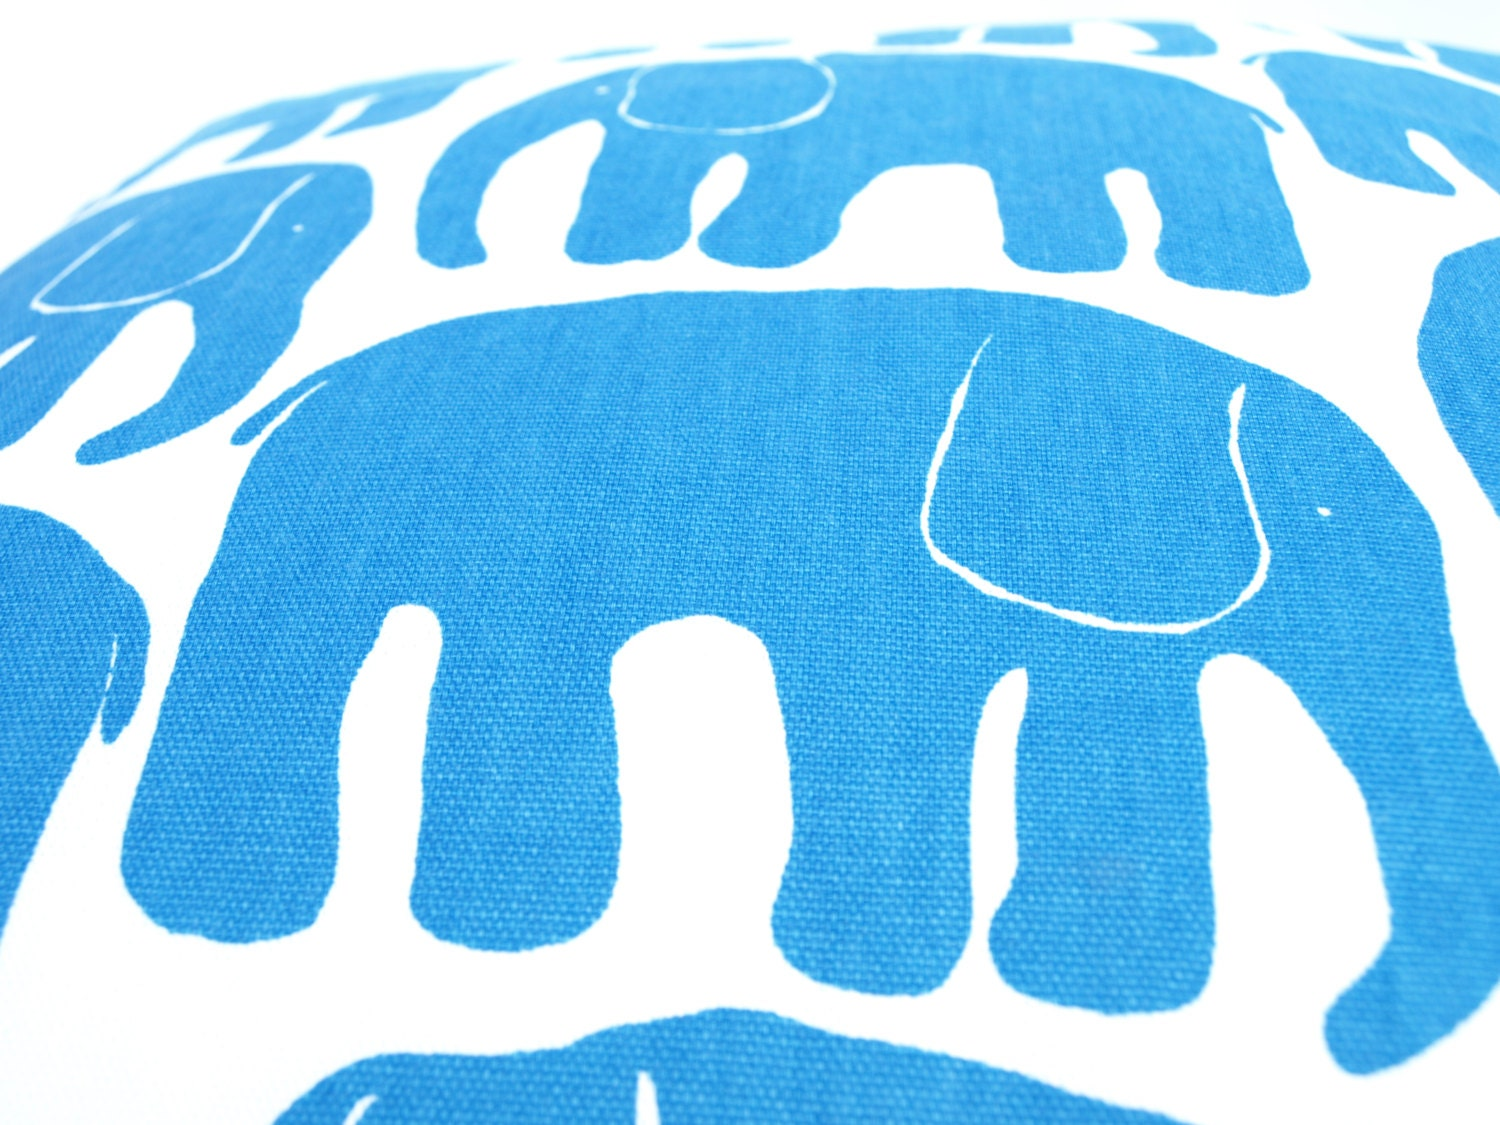 Bright Blue Decorative Pillow : Decorative Pillow cover white bright blue Elephants by Dreamzzzzz